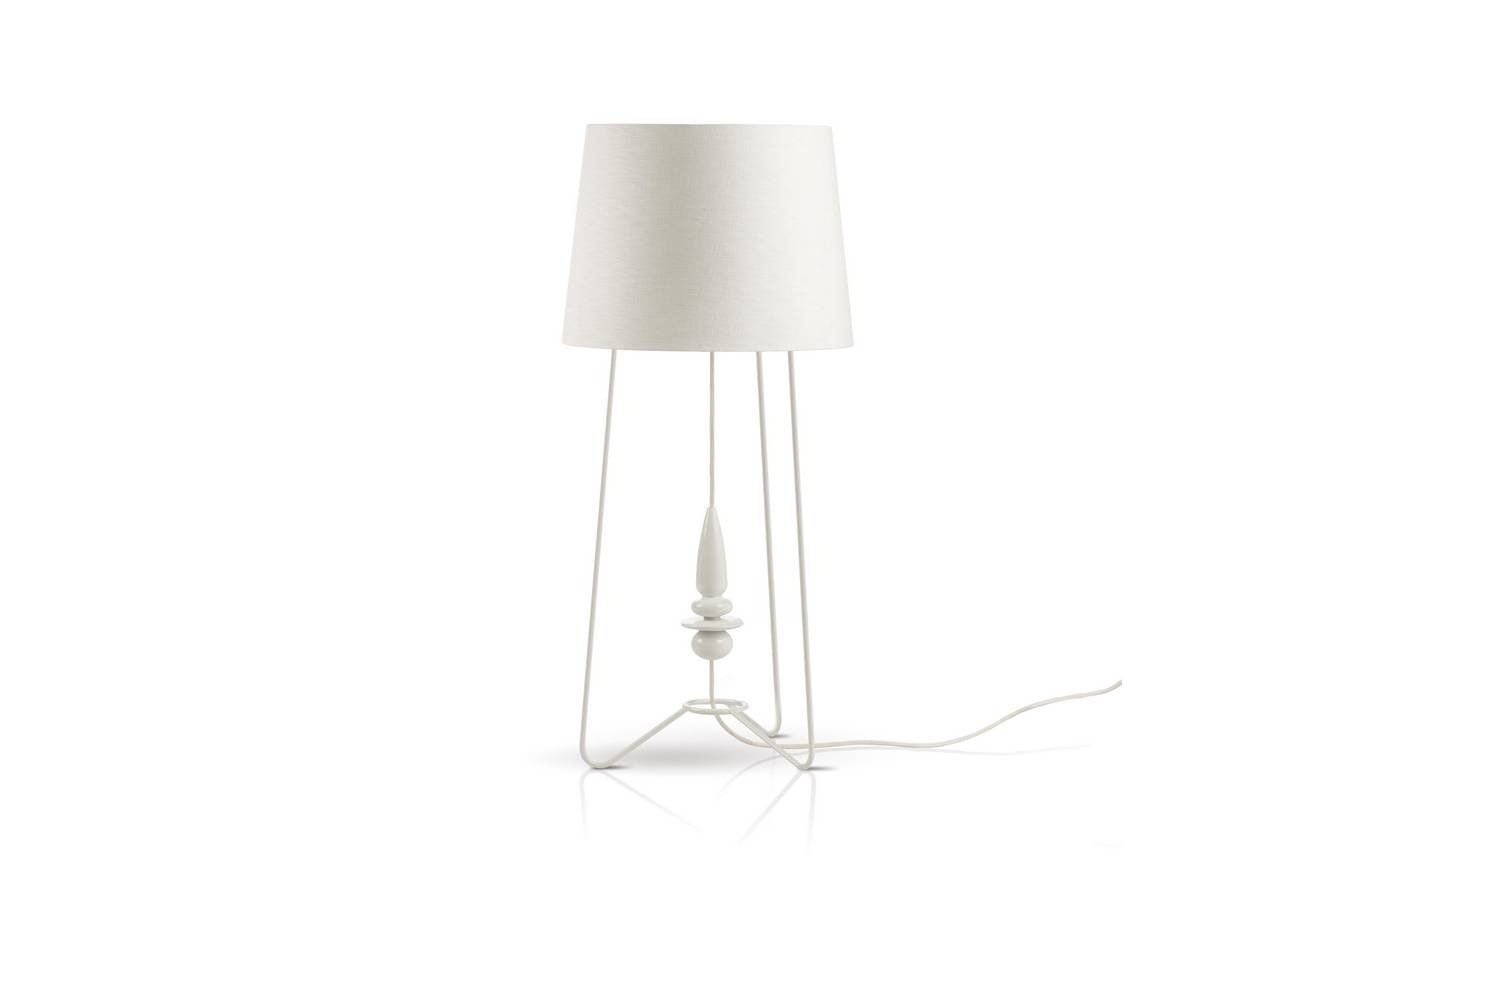 Daddy Longleg Table Lamp by Henrik Pedersen for Frandsen Lighting